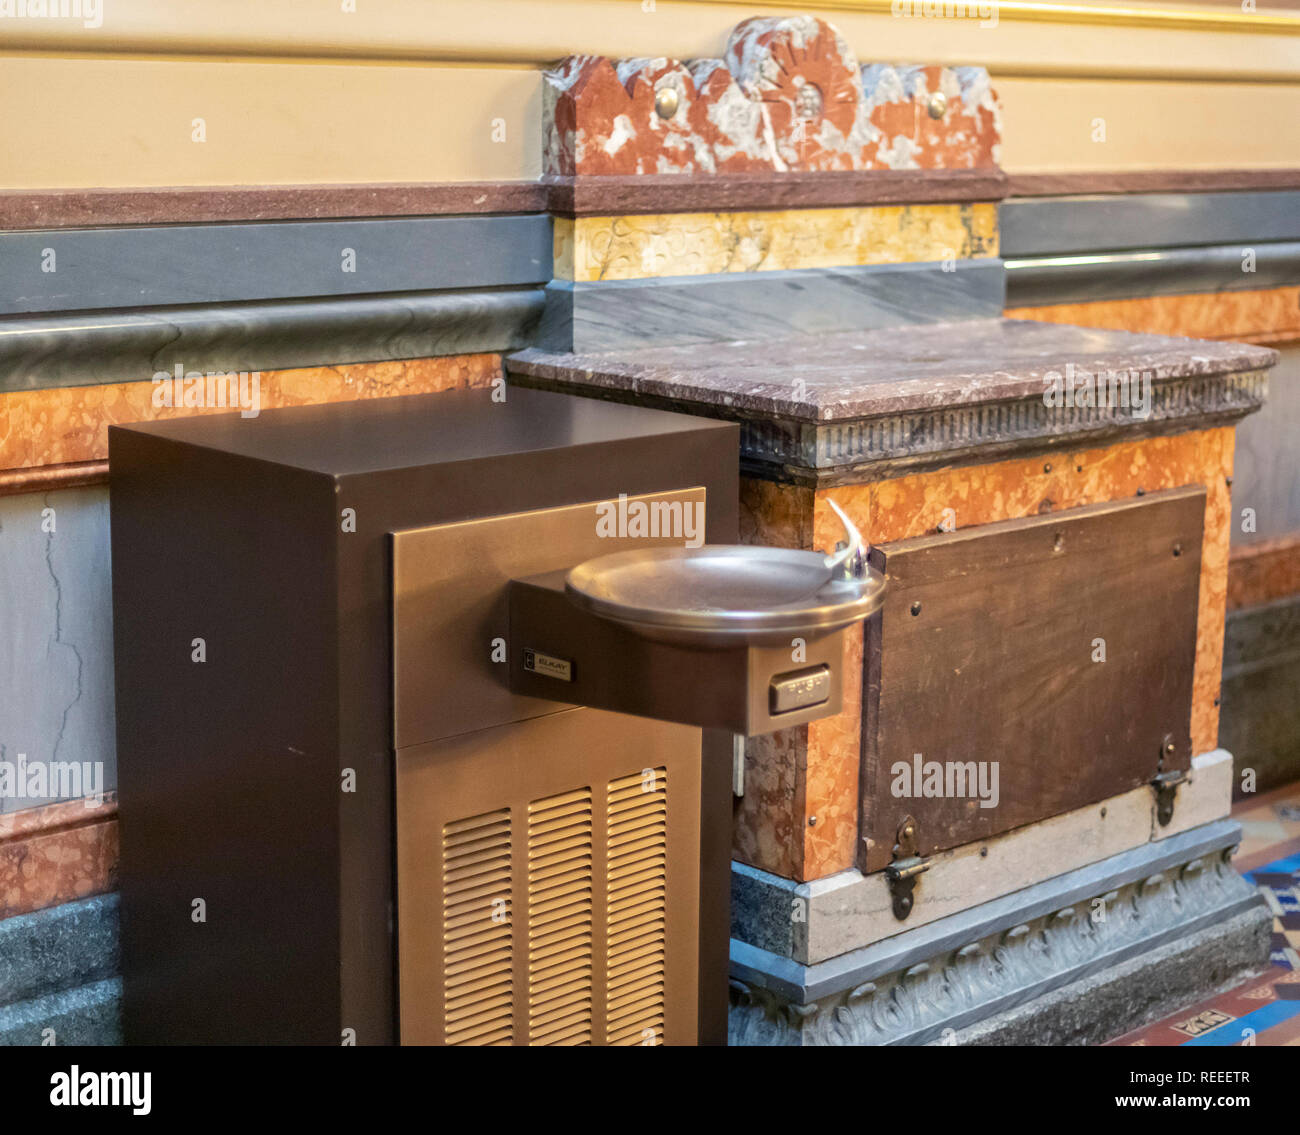 Des Moines, Iowa - A modern water fountain is next to one of the original water coolers in the Iowa state capitol building. The original cooler held a - Stock Image